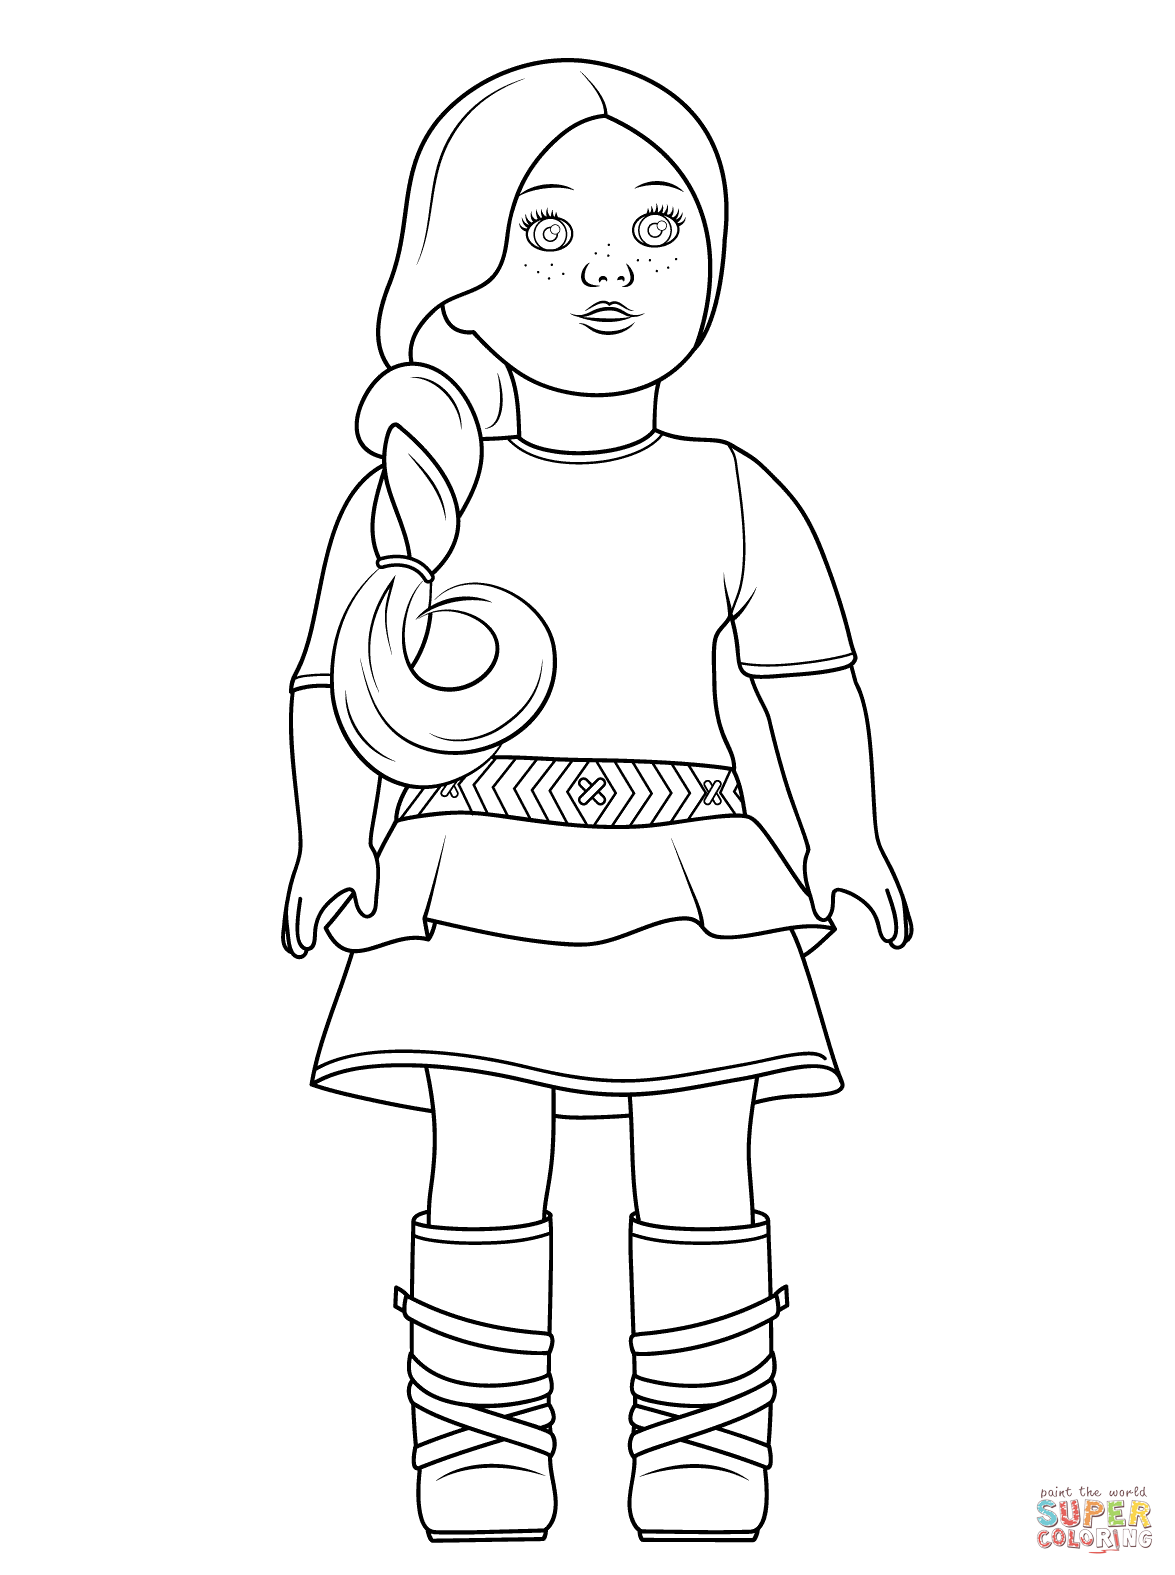 ag coloring pages ag doll school printables printable colouring pages for ag pages coloring